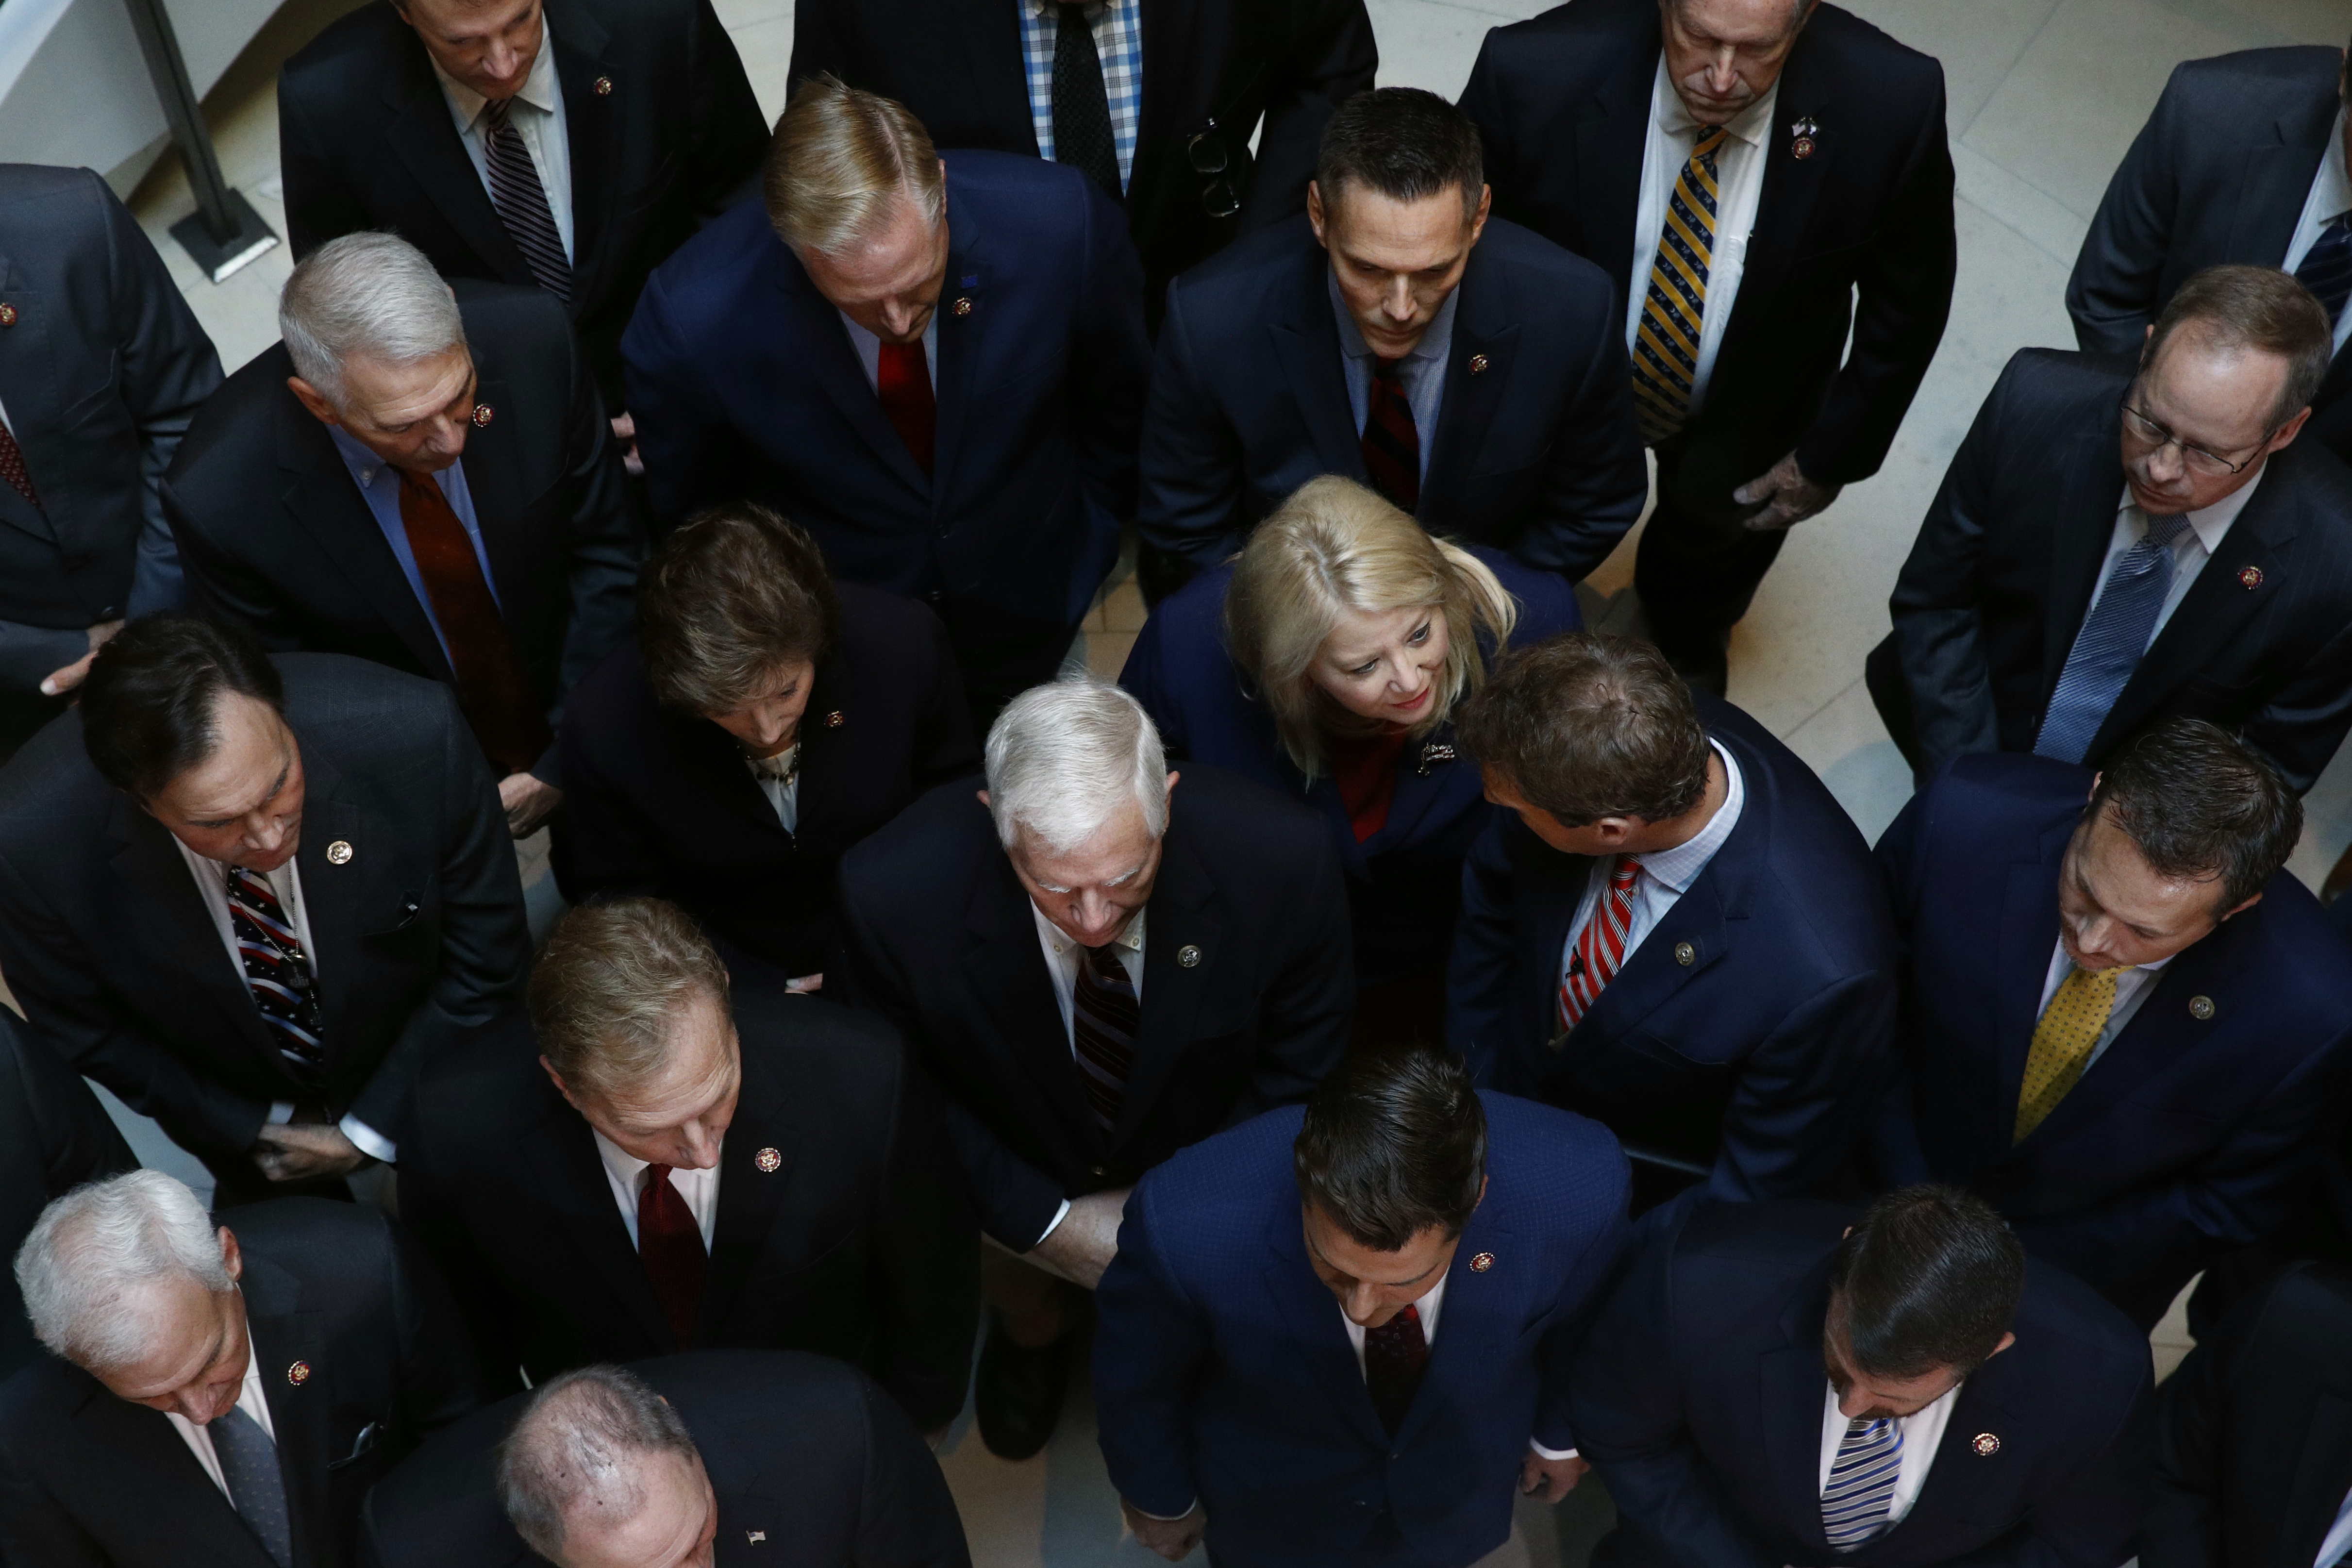 Rep. Debbie Lesko, R-Ariz., center, gathers with fellow House Republicans for a news conference after Deputy Assistant Secretary of Defense Laura Cooper arrived for a closed-door meeting to testify as part of the House impeachment inquiry into President Donald Trump, Wednesday, Oct. 23, 2019, on Capitol Hill in Washington.